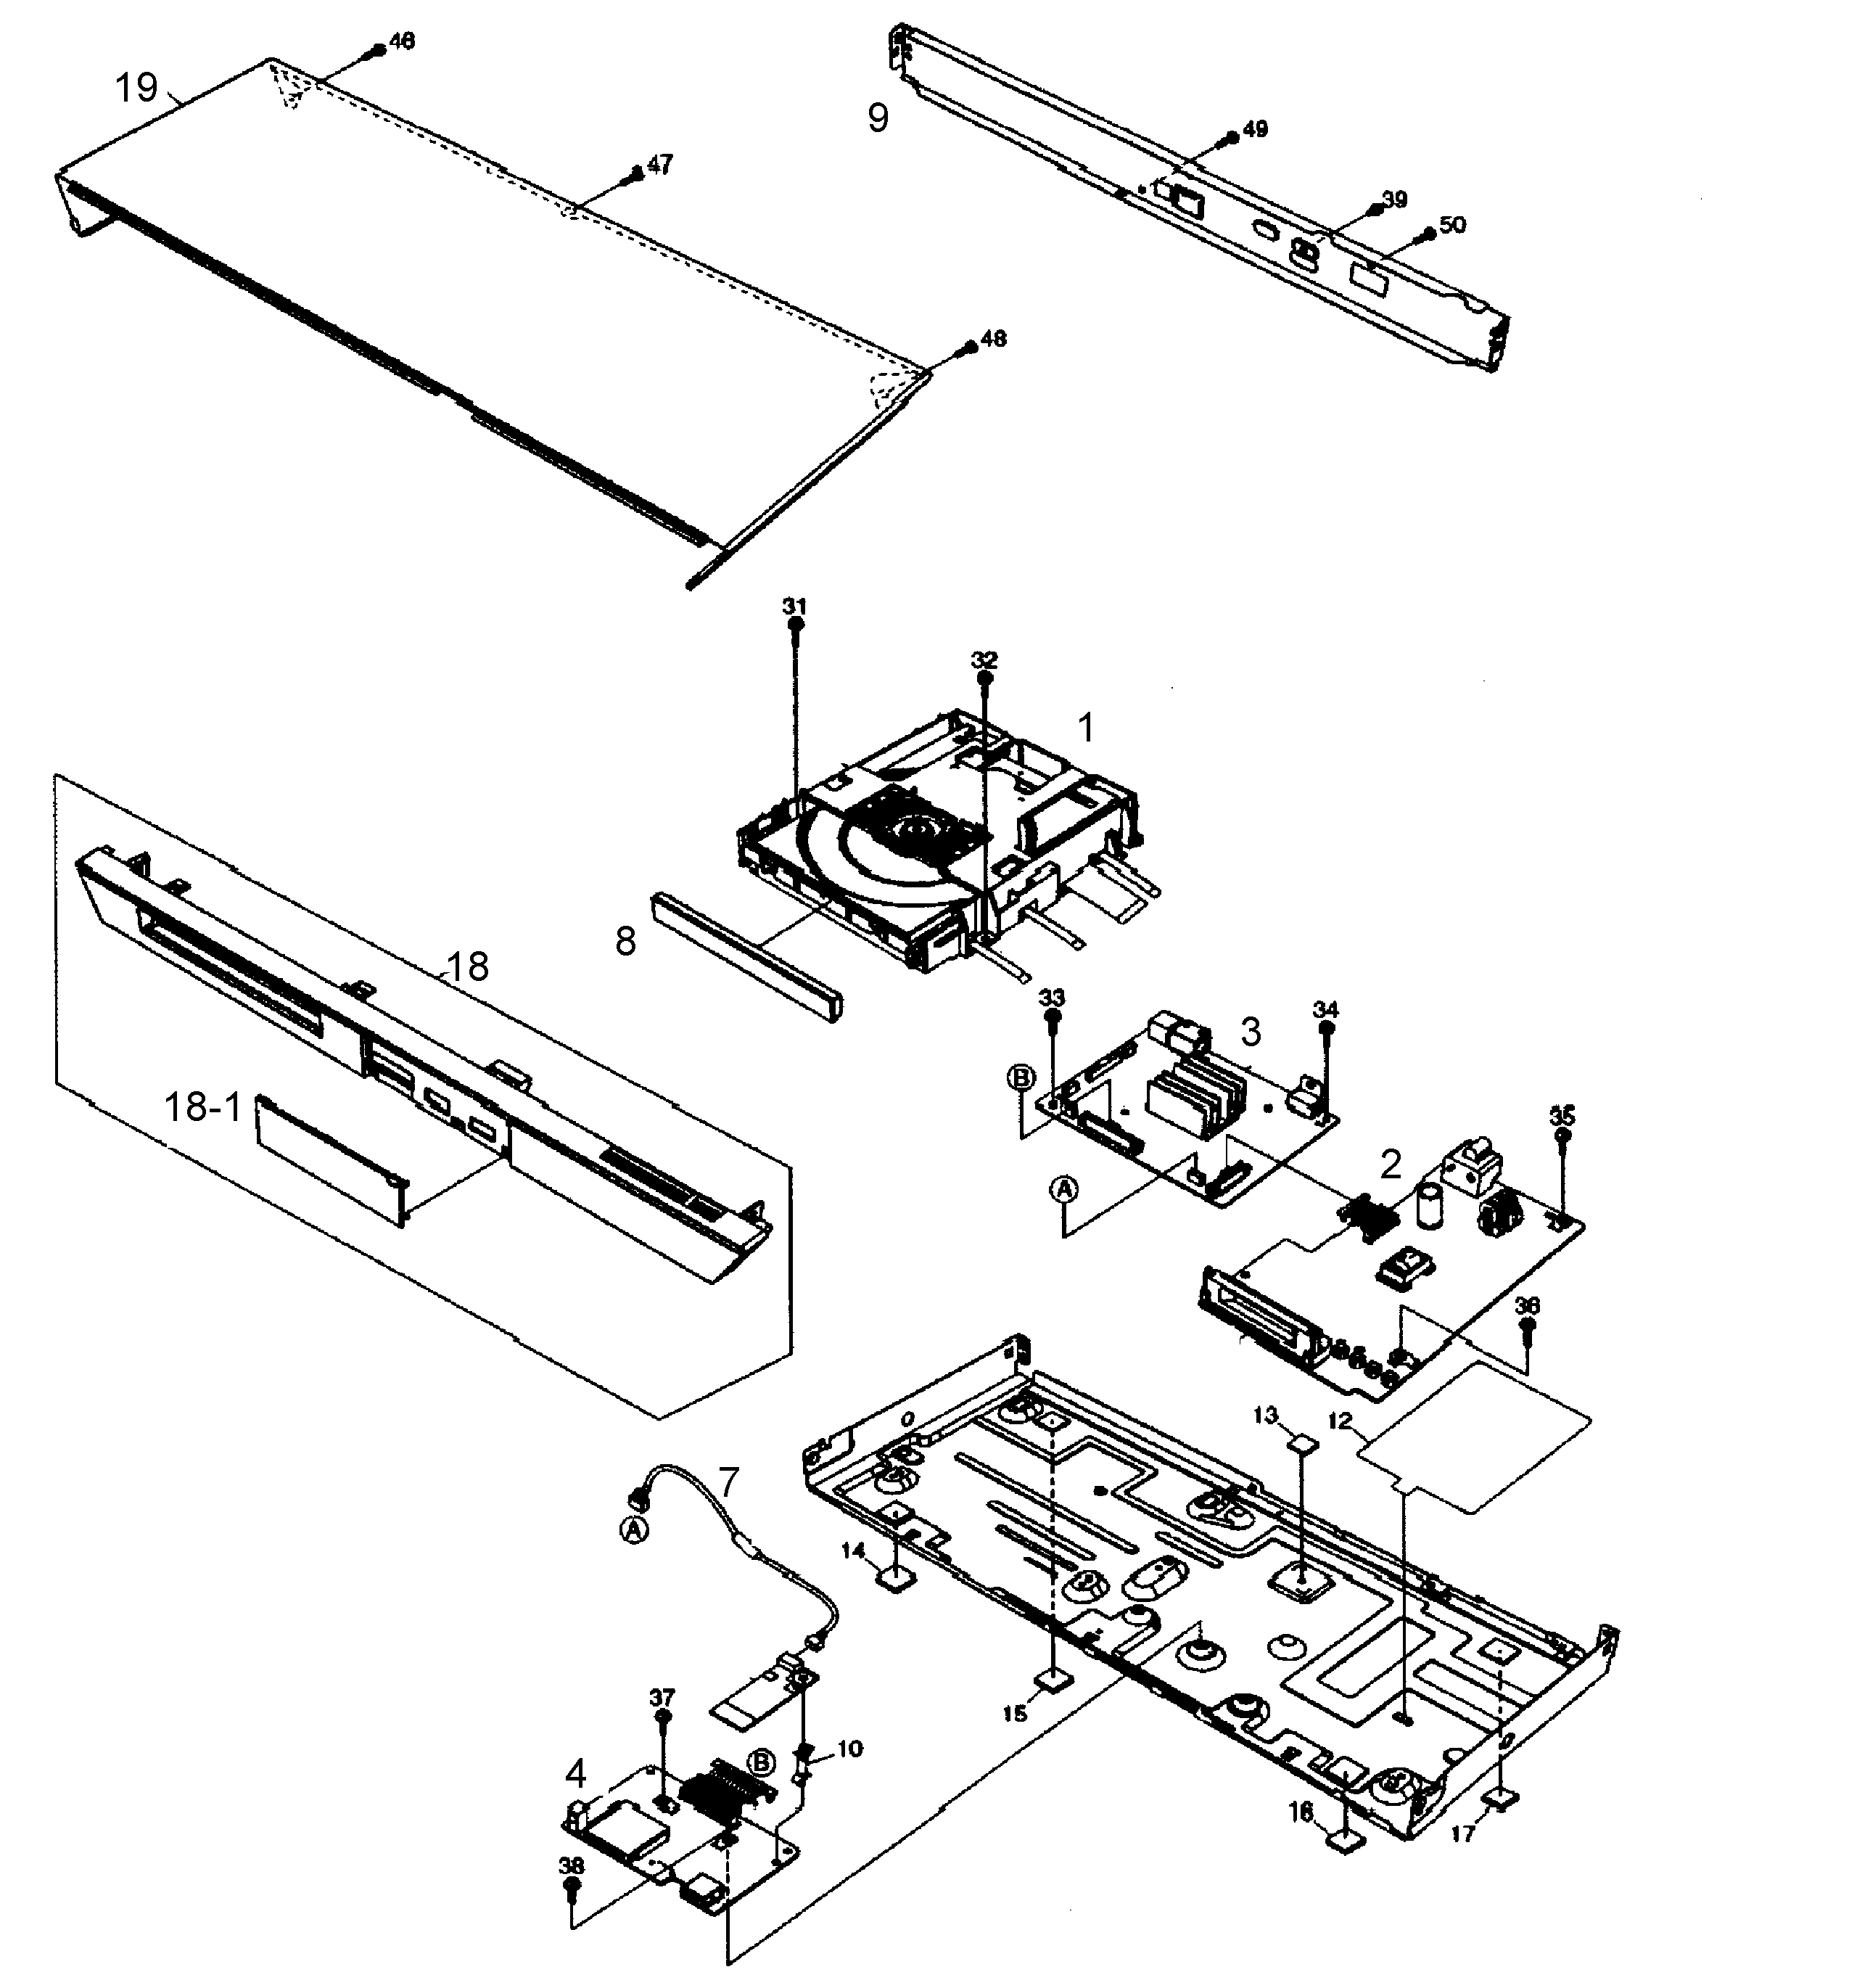 dvd player drawing at getdrawings free for personal use dvd DVD VCR Hookup Diagram 2549x2740 panasonic blu ray dvd player parts model dmpbdt230p sears